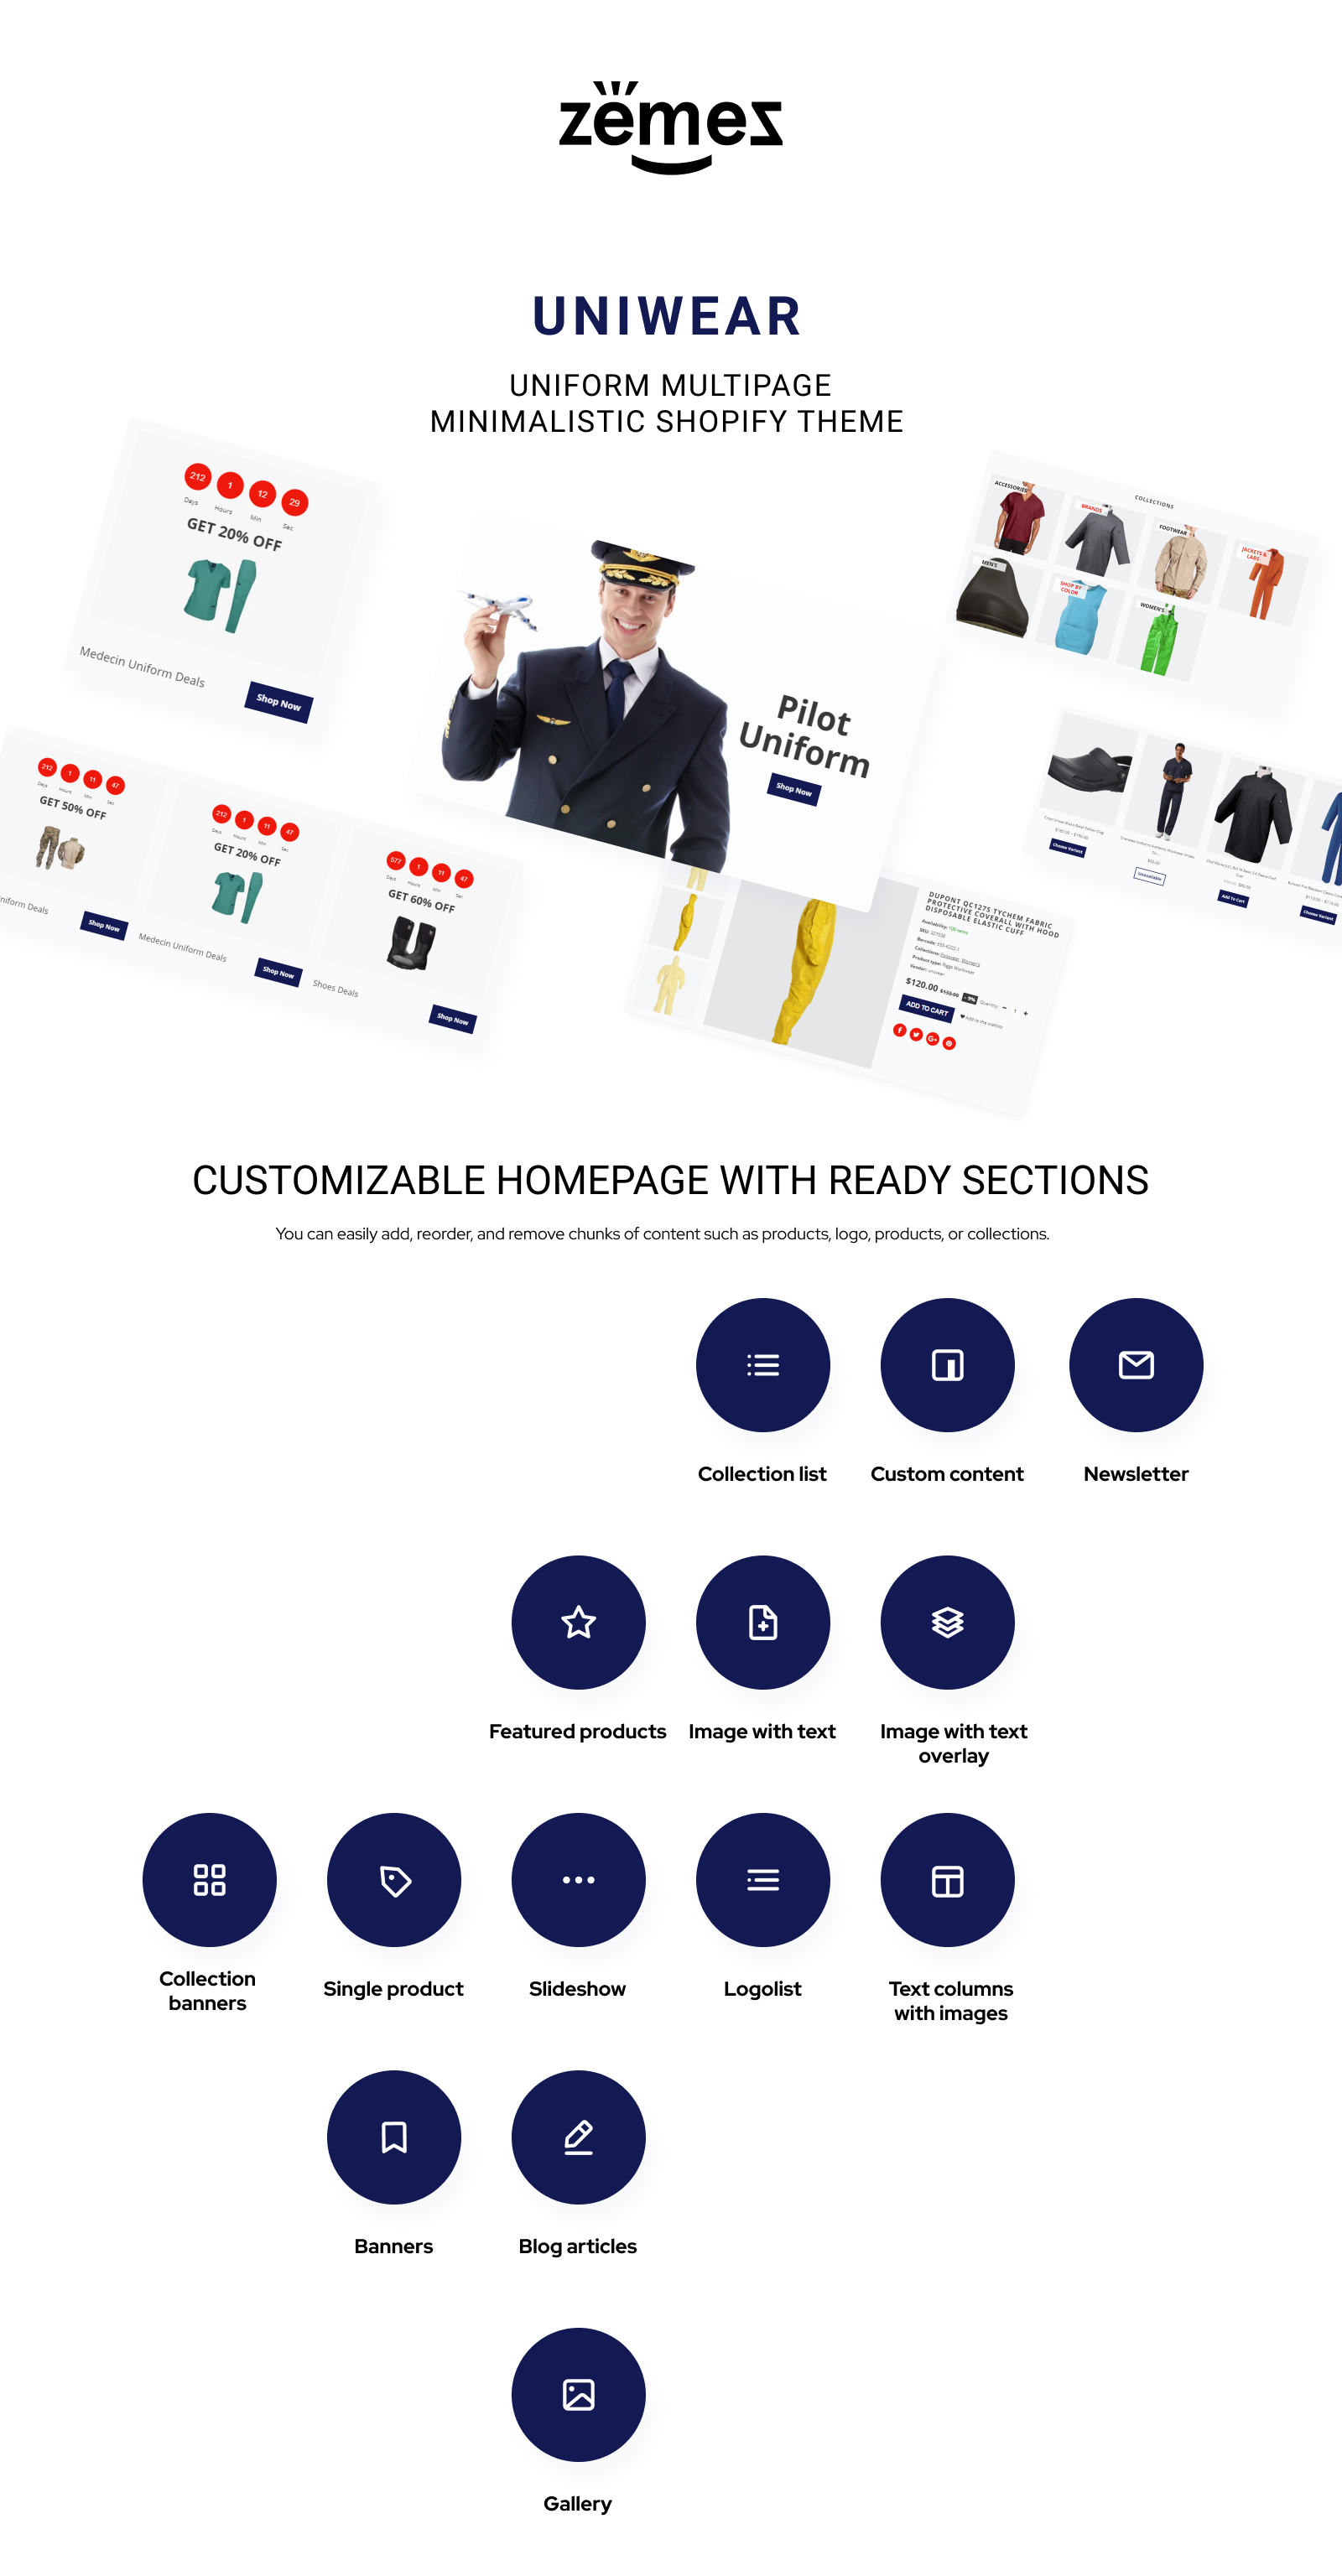 Uniwear - Uniform Multipage Minimalistic Shopify Theme